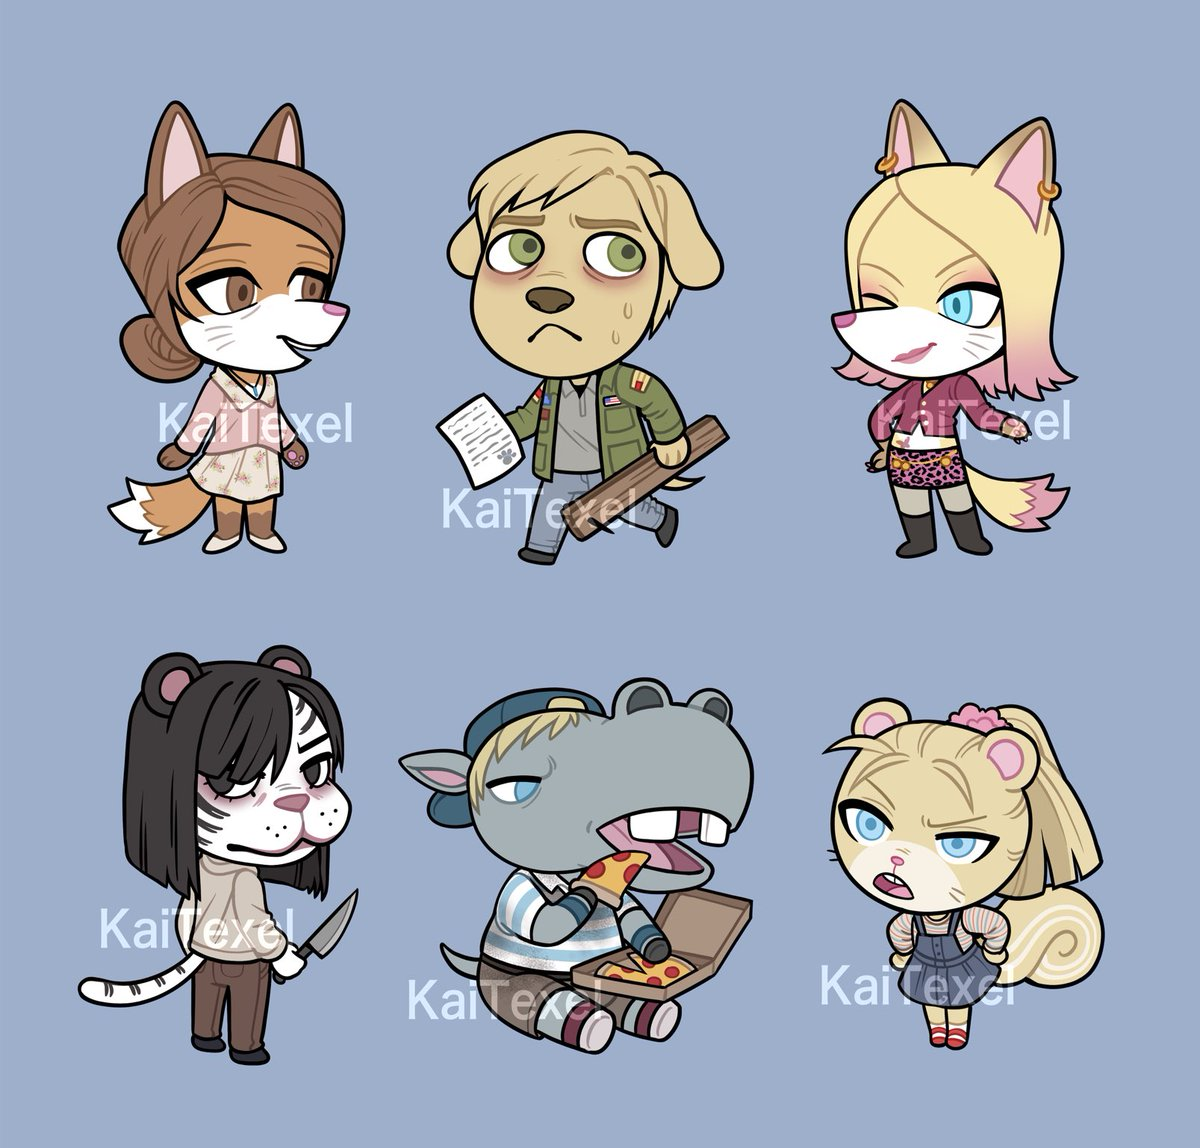 RT @Kai_Texel: Animal Crossing x Silent Hill 2! Kinda sad I finished this so quickly... I was looking forward to it! https://t.co/gVpch8uyRy